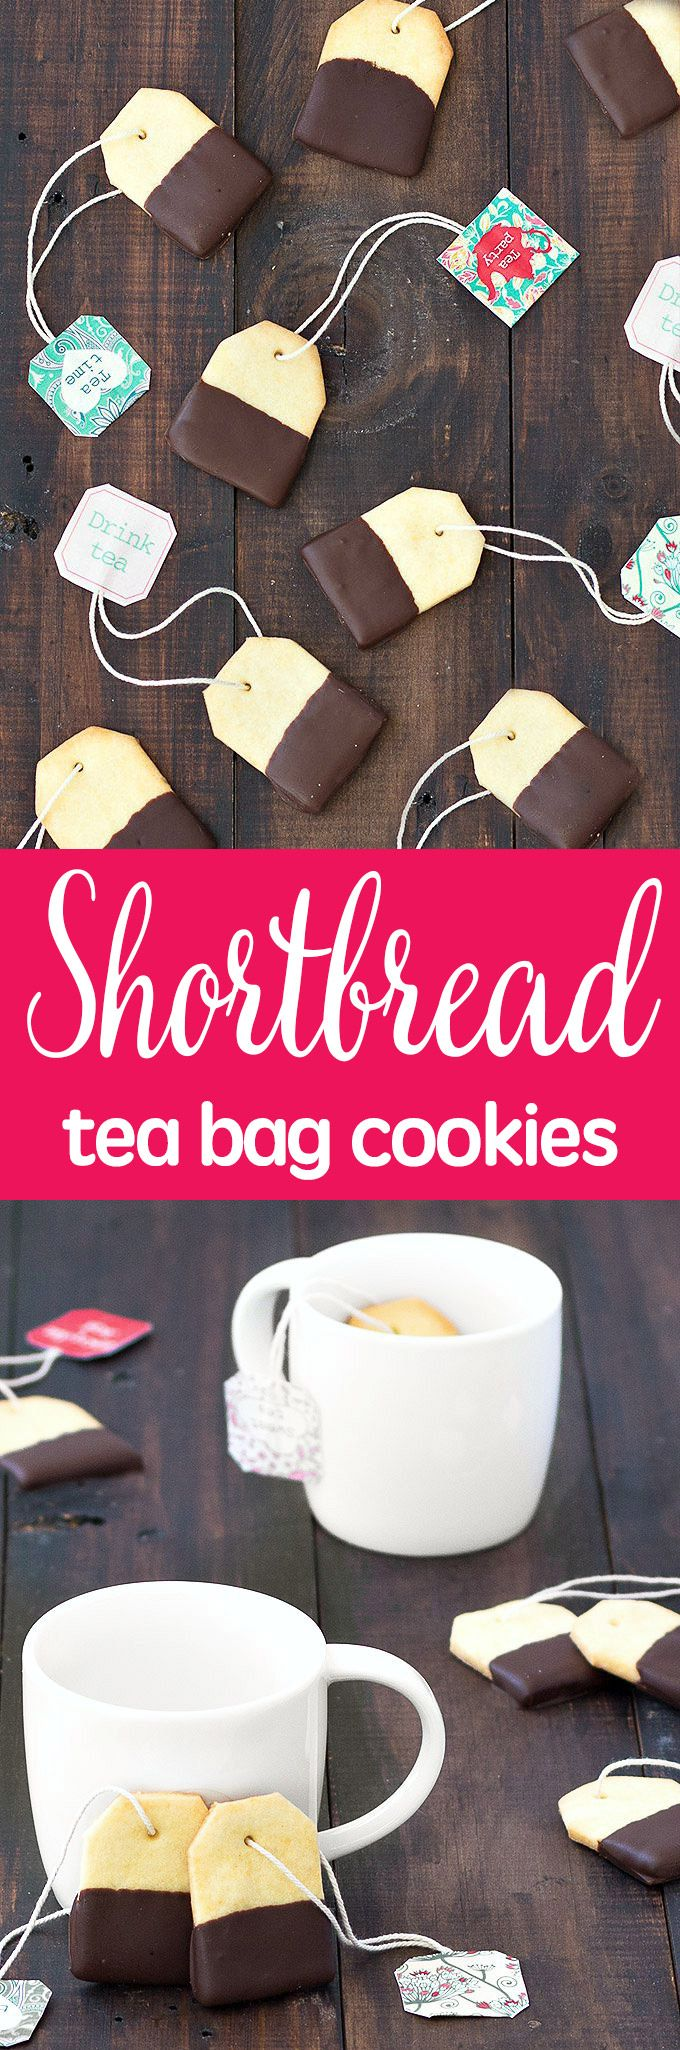 Impress your friends the next time you have them over for tea with these chocolatedipped shortbread tea bag cookies Easy recipe  step by step tutorial